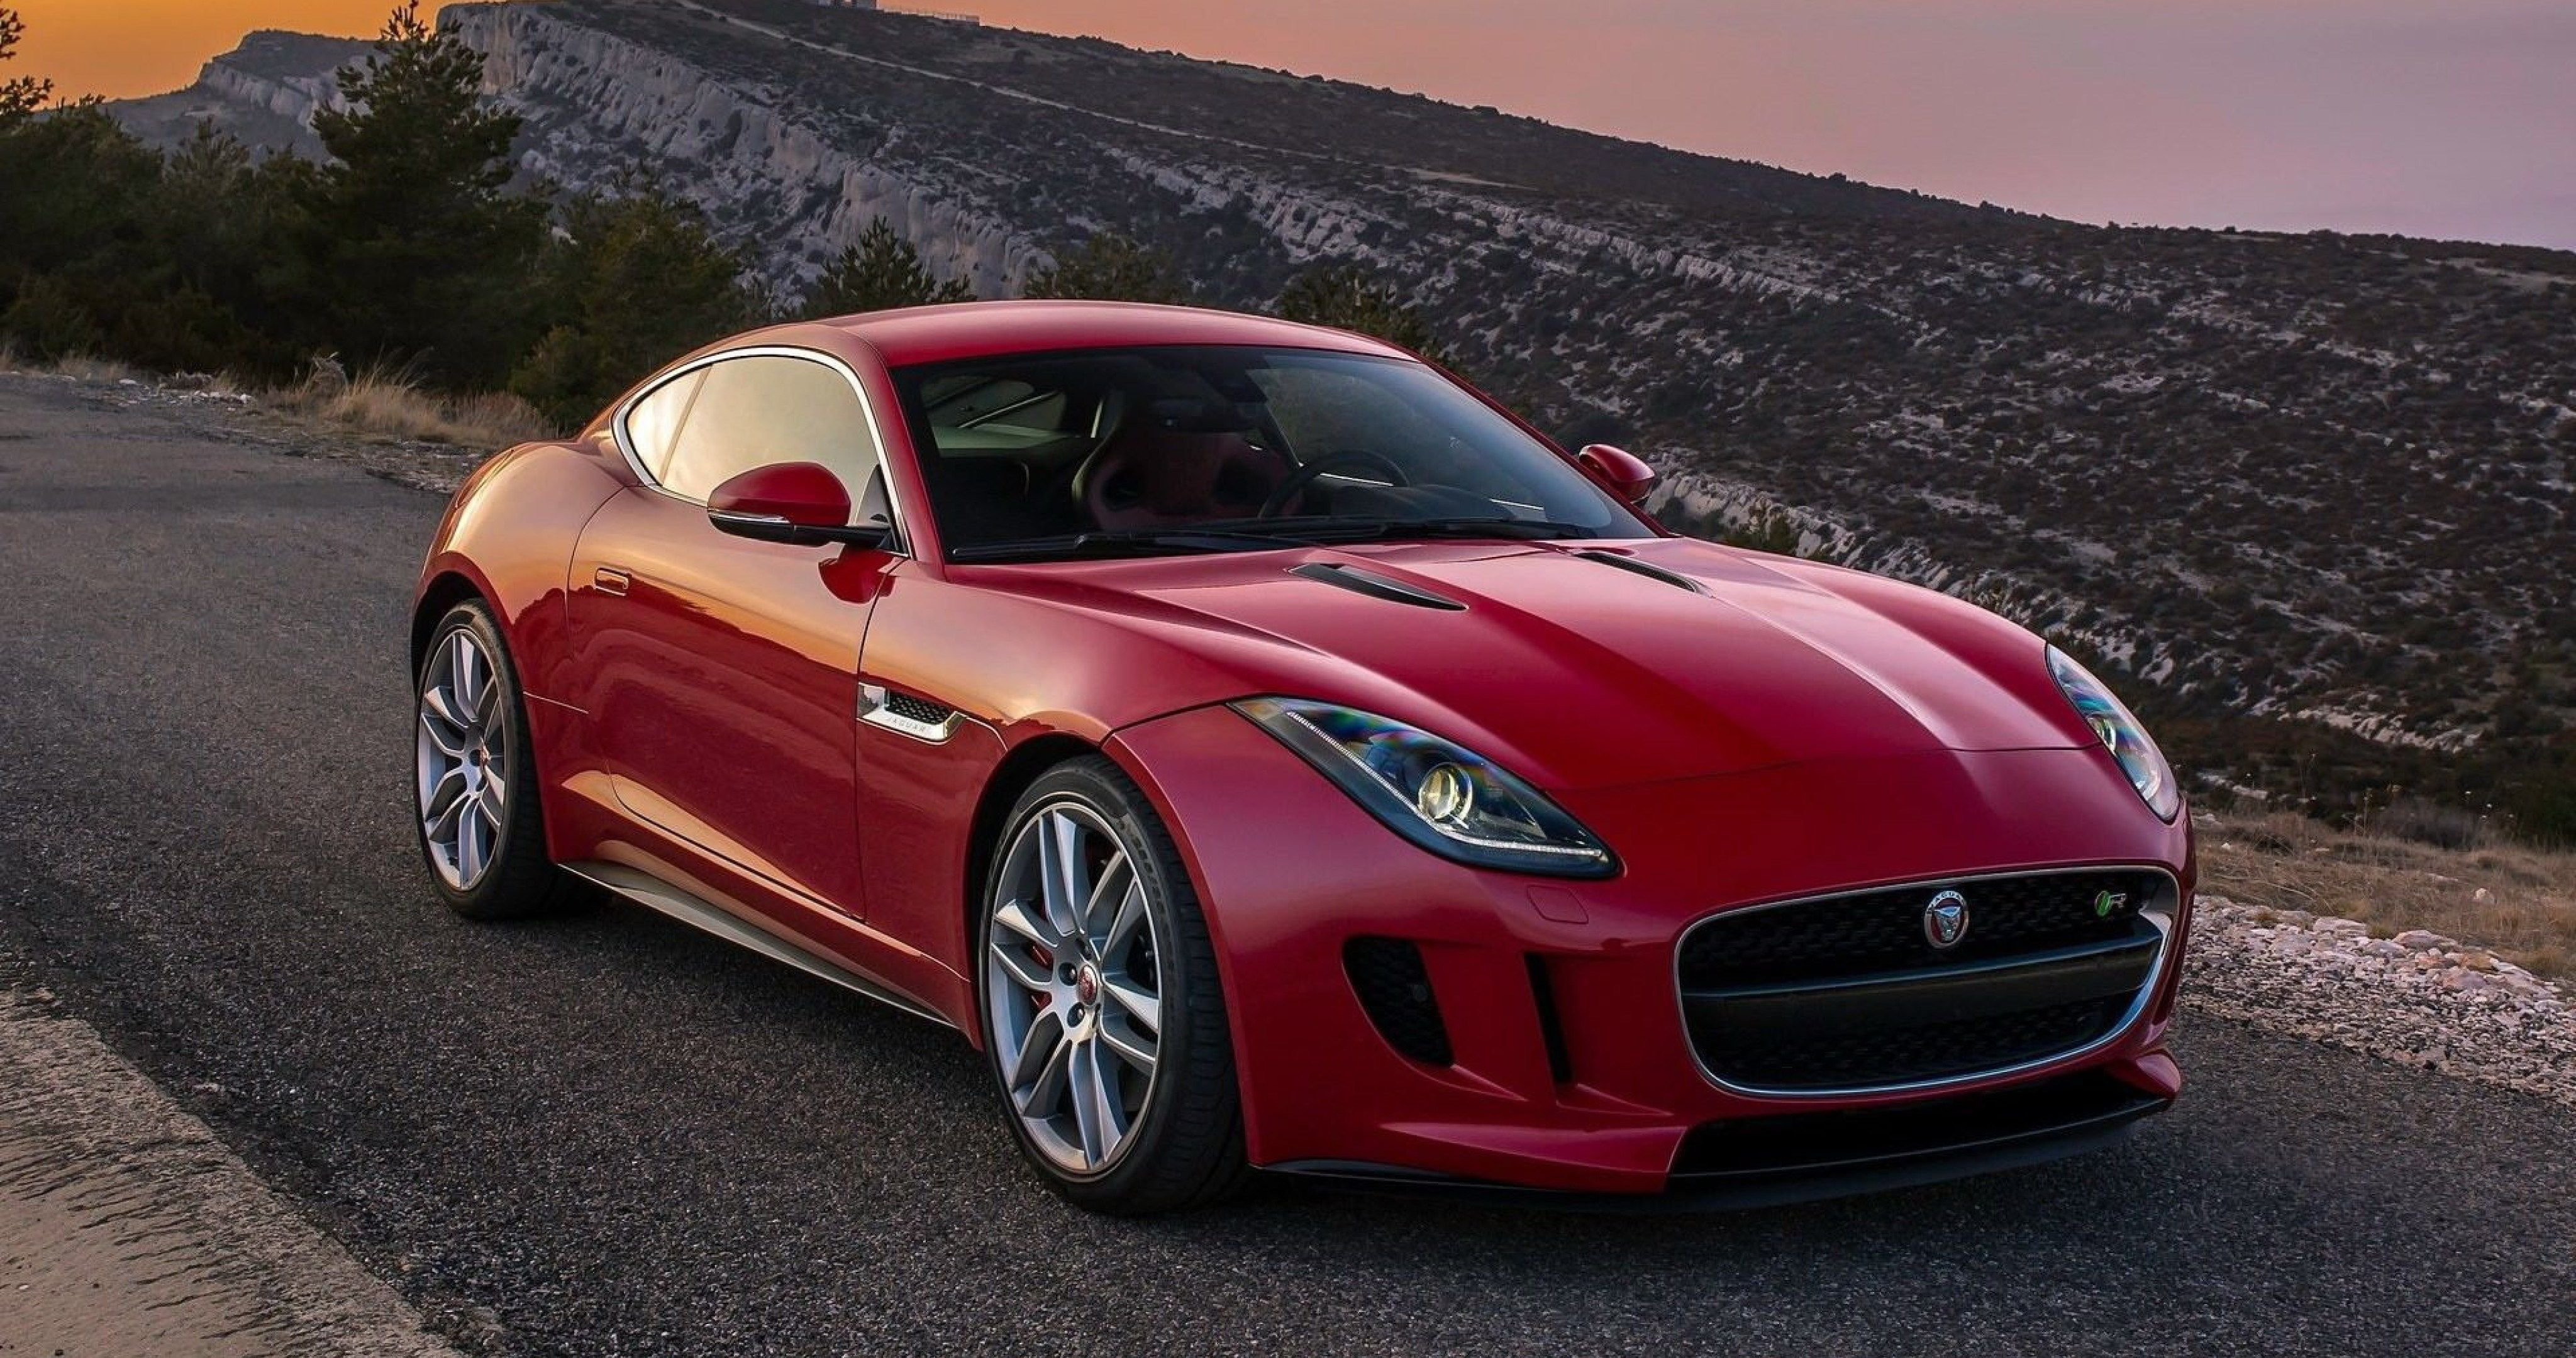 New Jaguar F Type Coupe Wallpaper 4K Ultra Hd Wallpaper On This Month